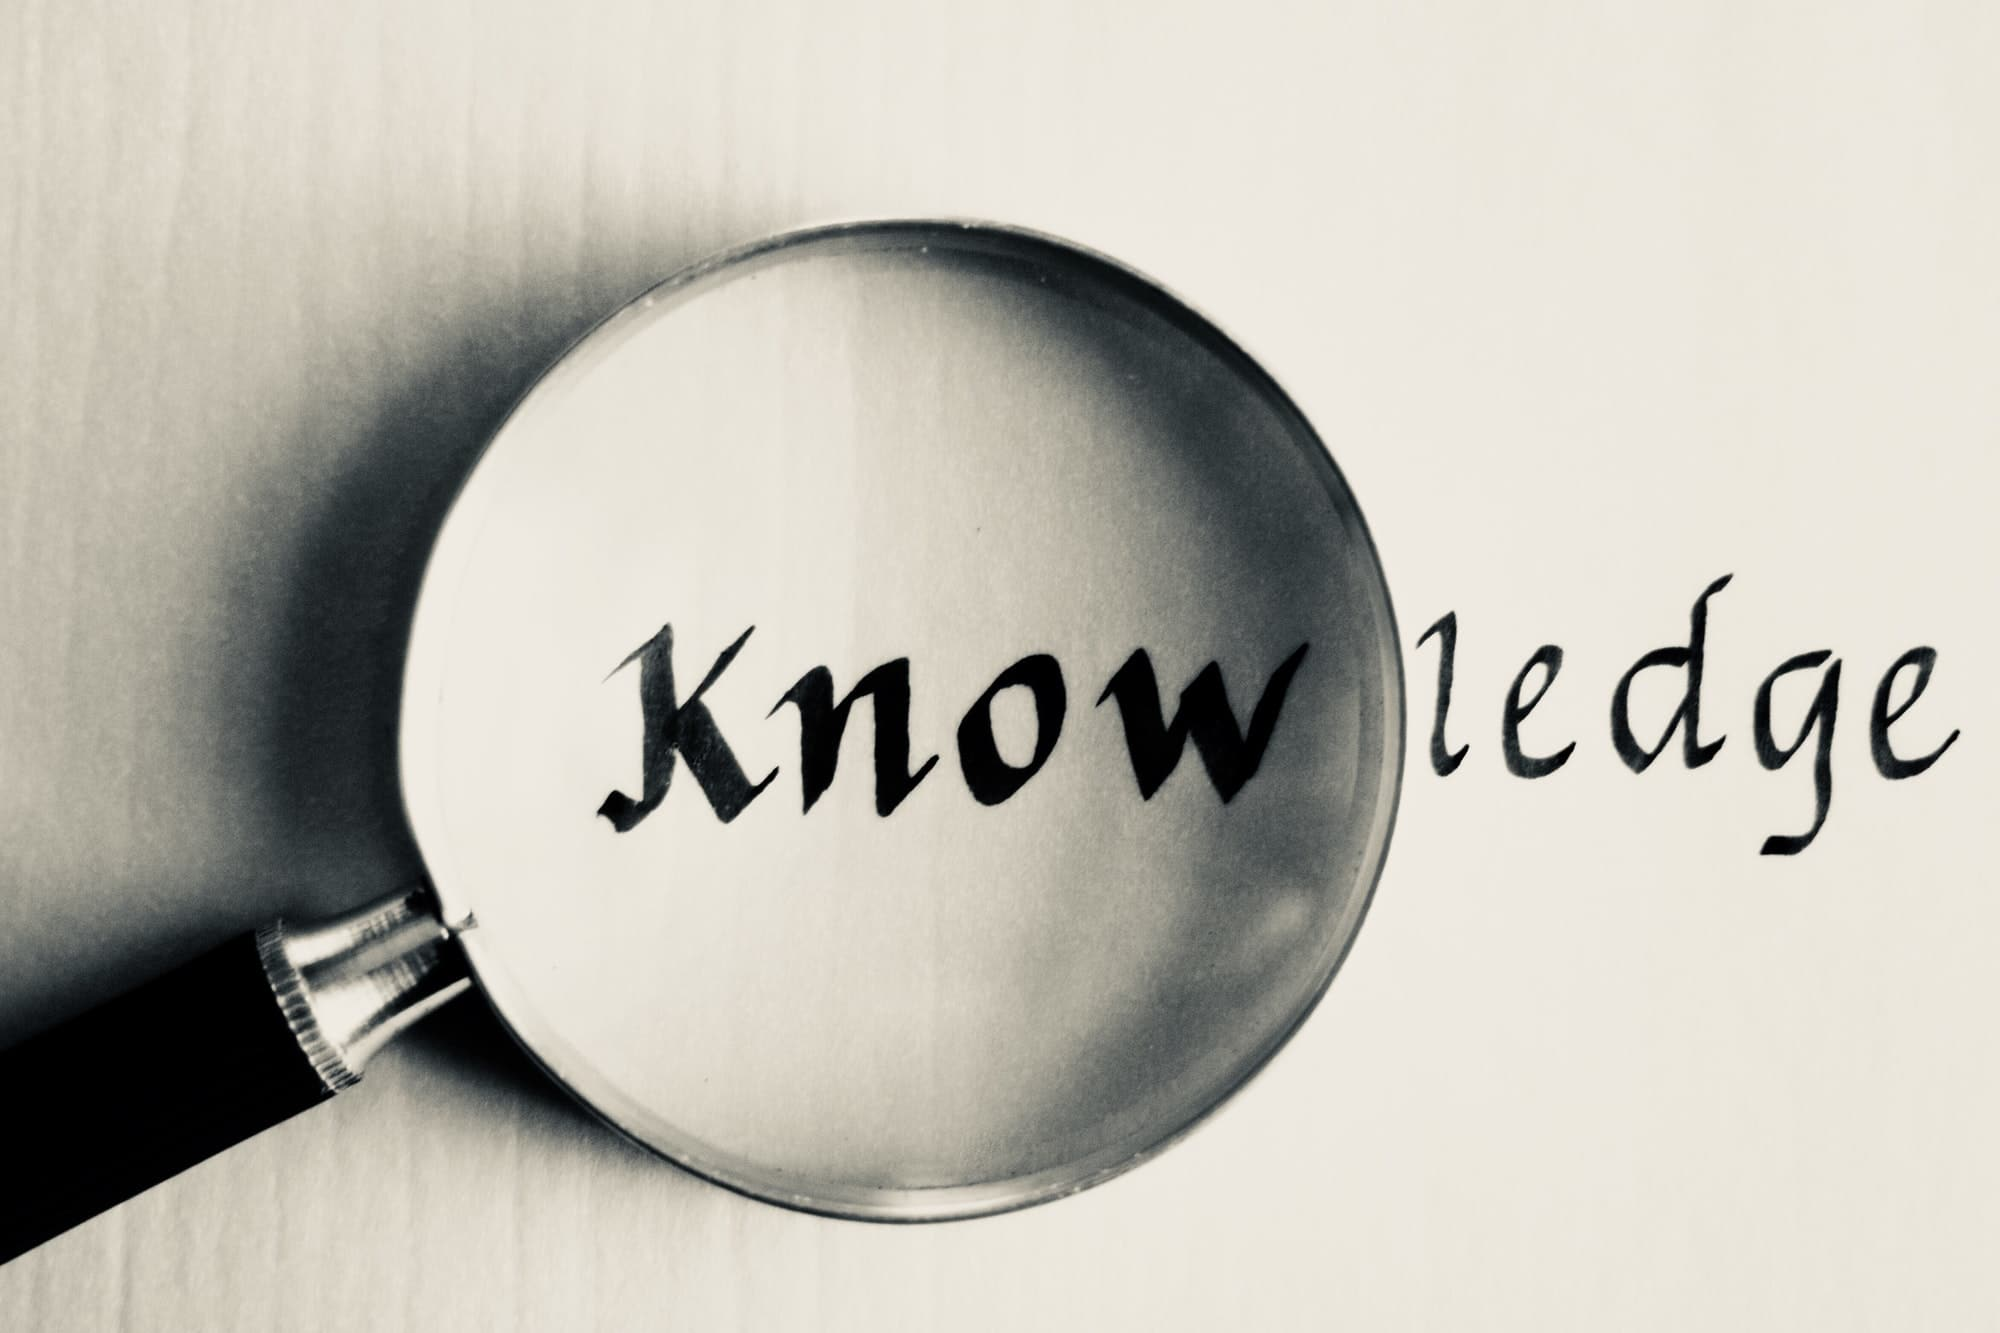 """A vintage magnifying glass emphasizing the """"Know"""" part of the word """"Knowledge"""" on parchment paper"""